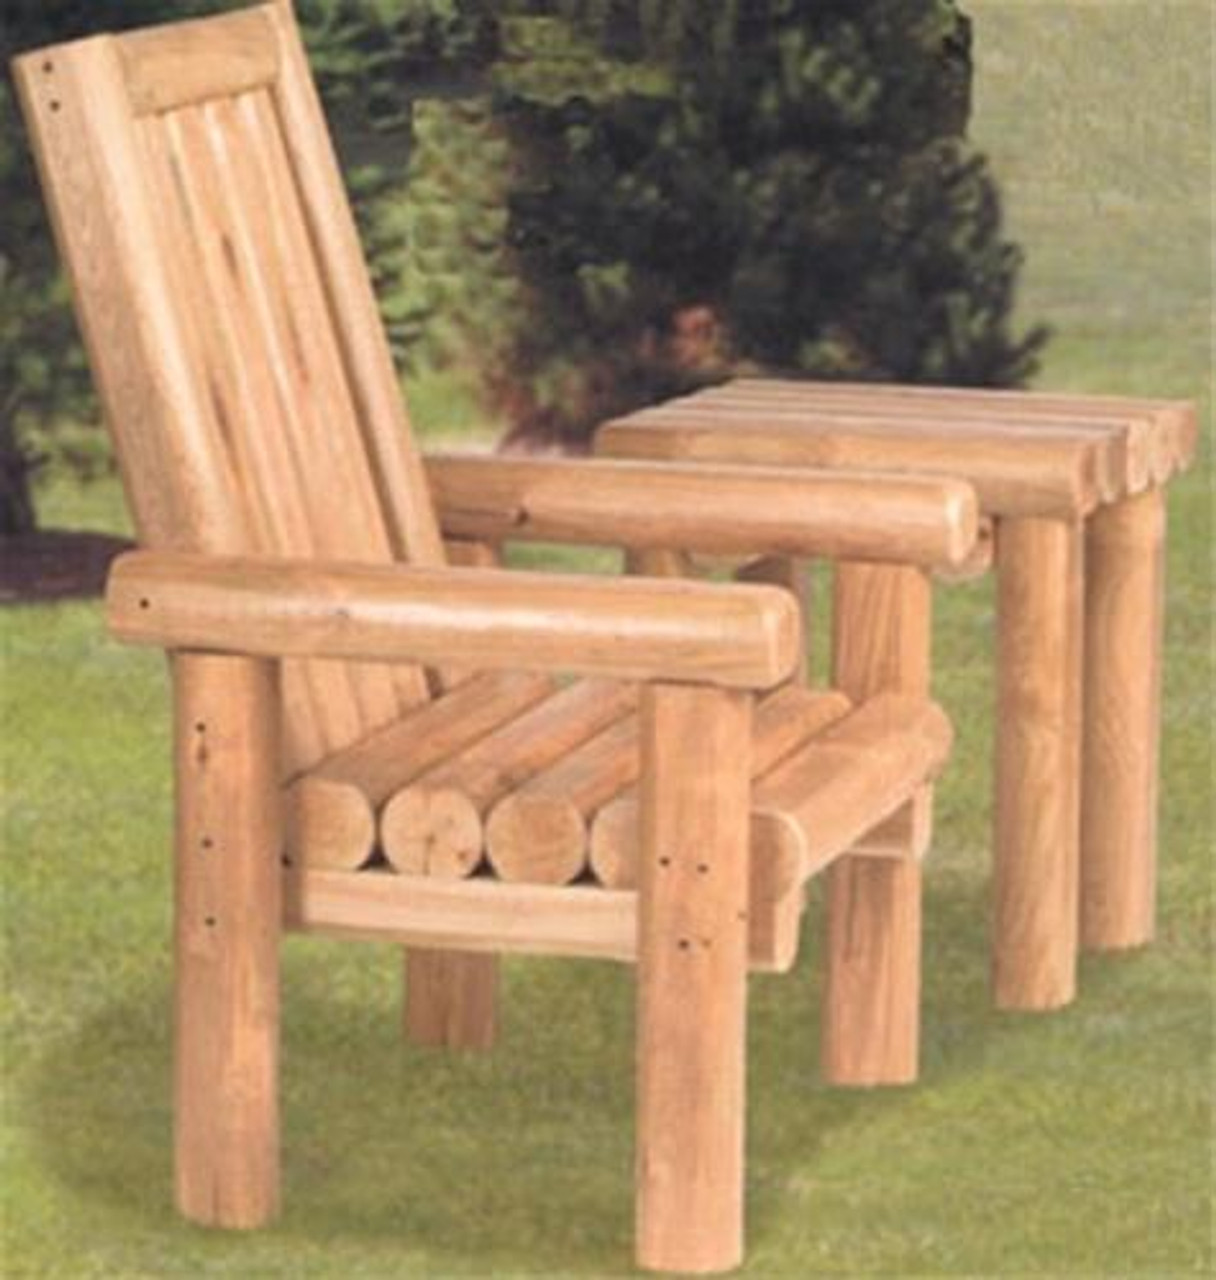 Build your outdoor furniture with this Winfield Collection Rustic Chair and Table Plan.